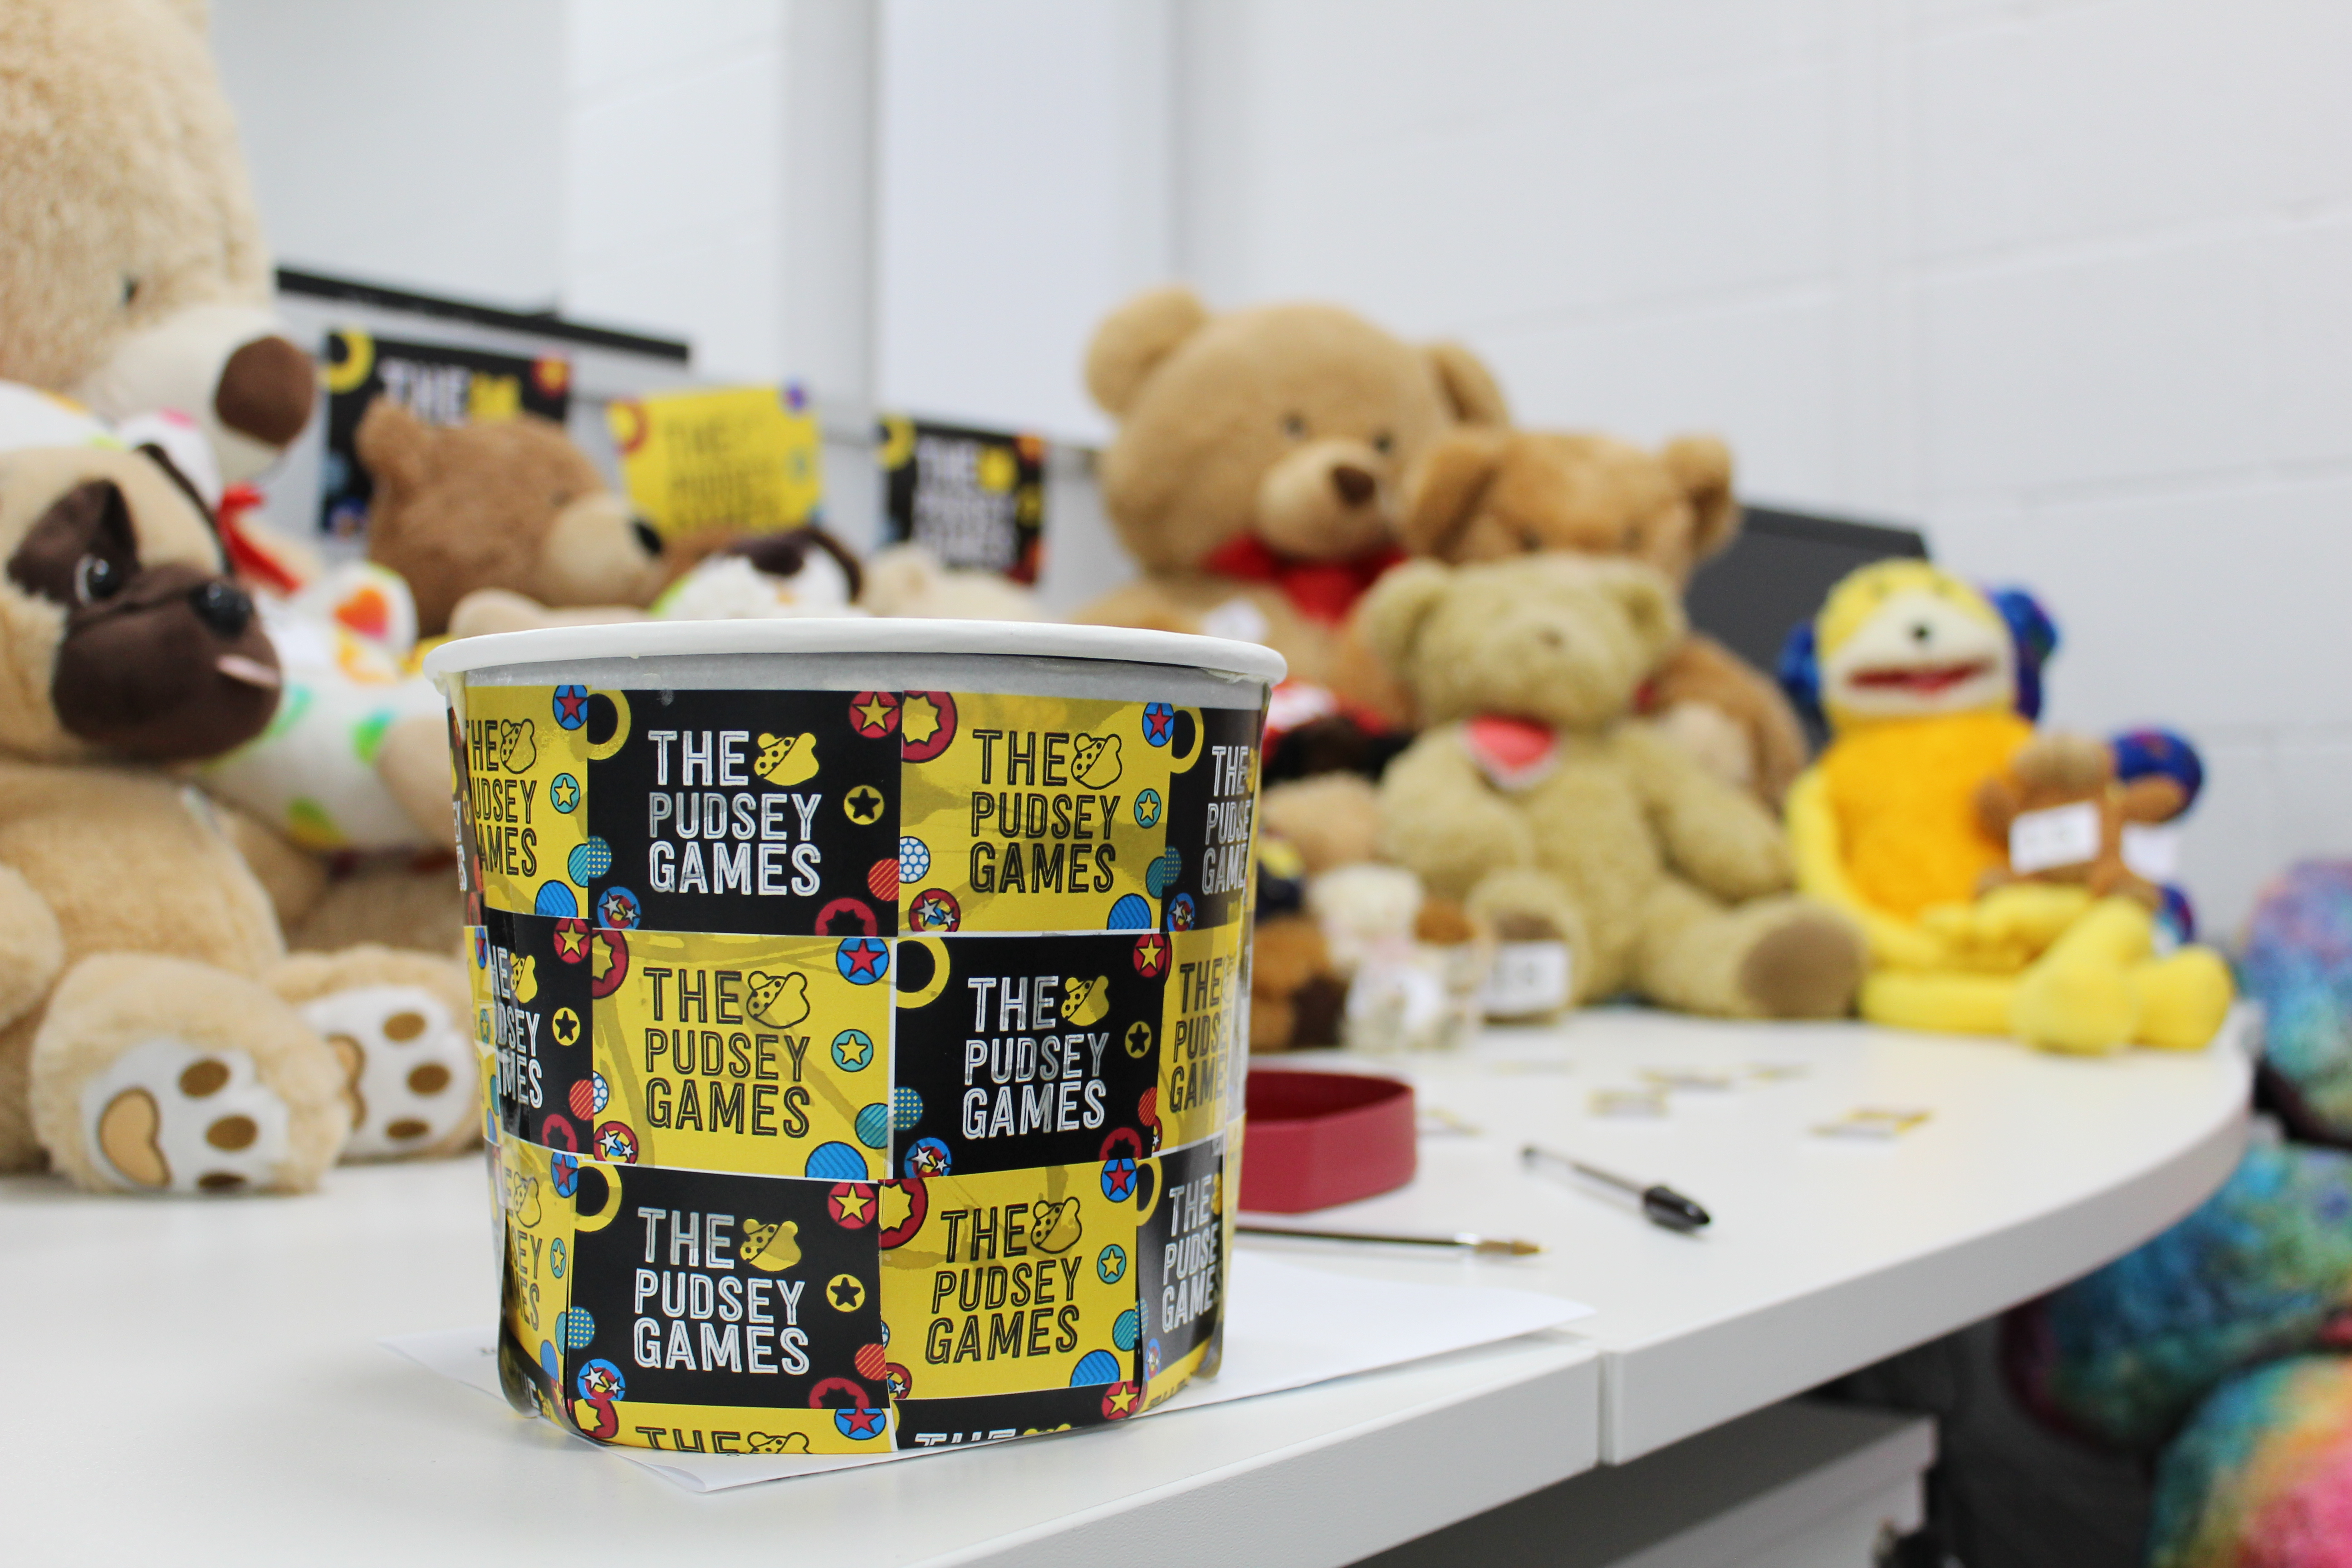 Meat Management raises funds for Children in Need | Meat